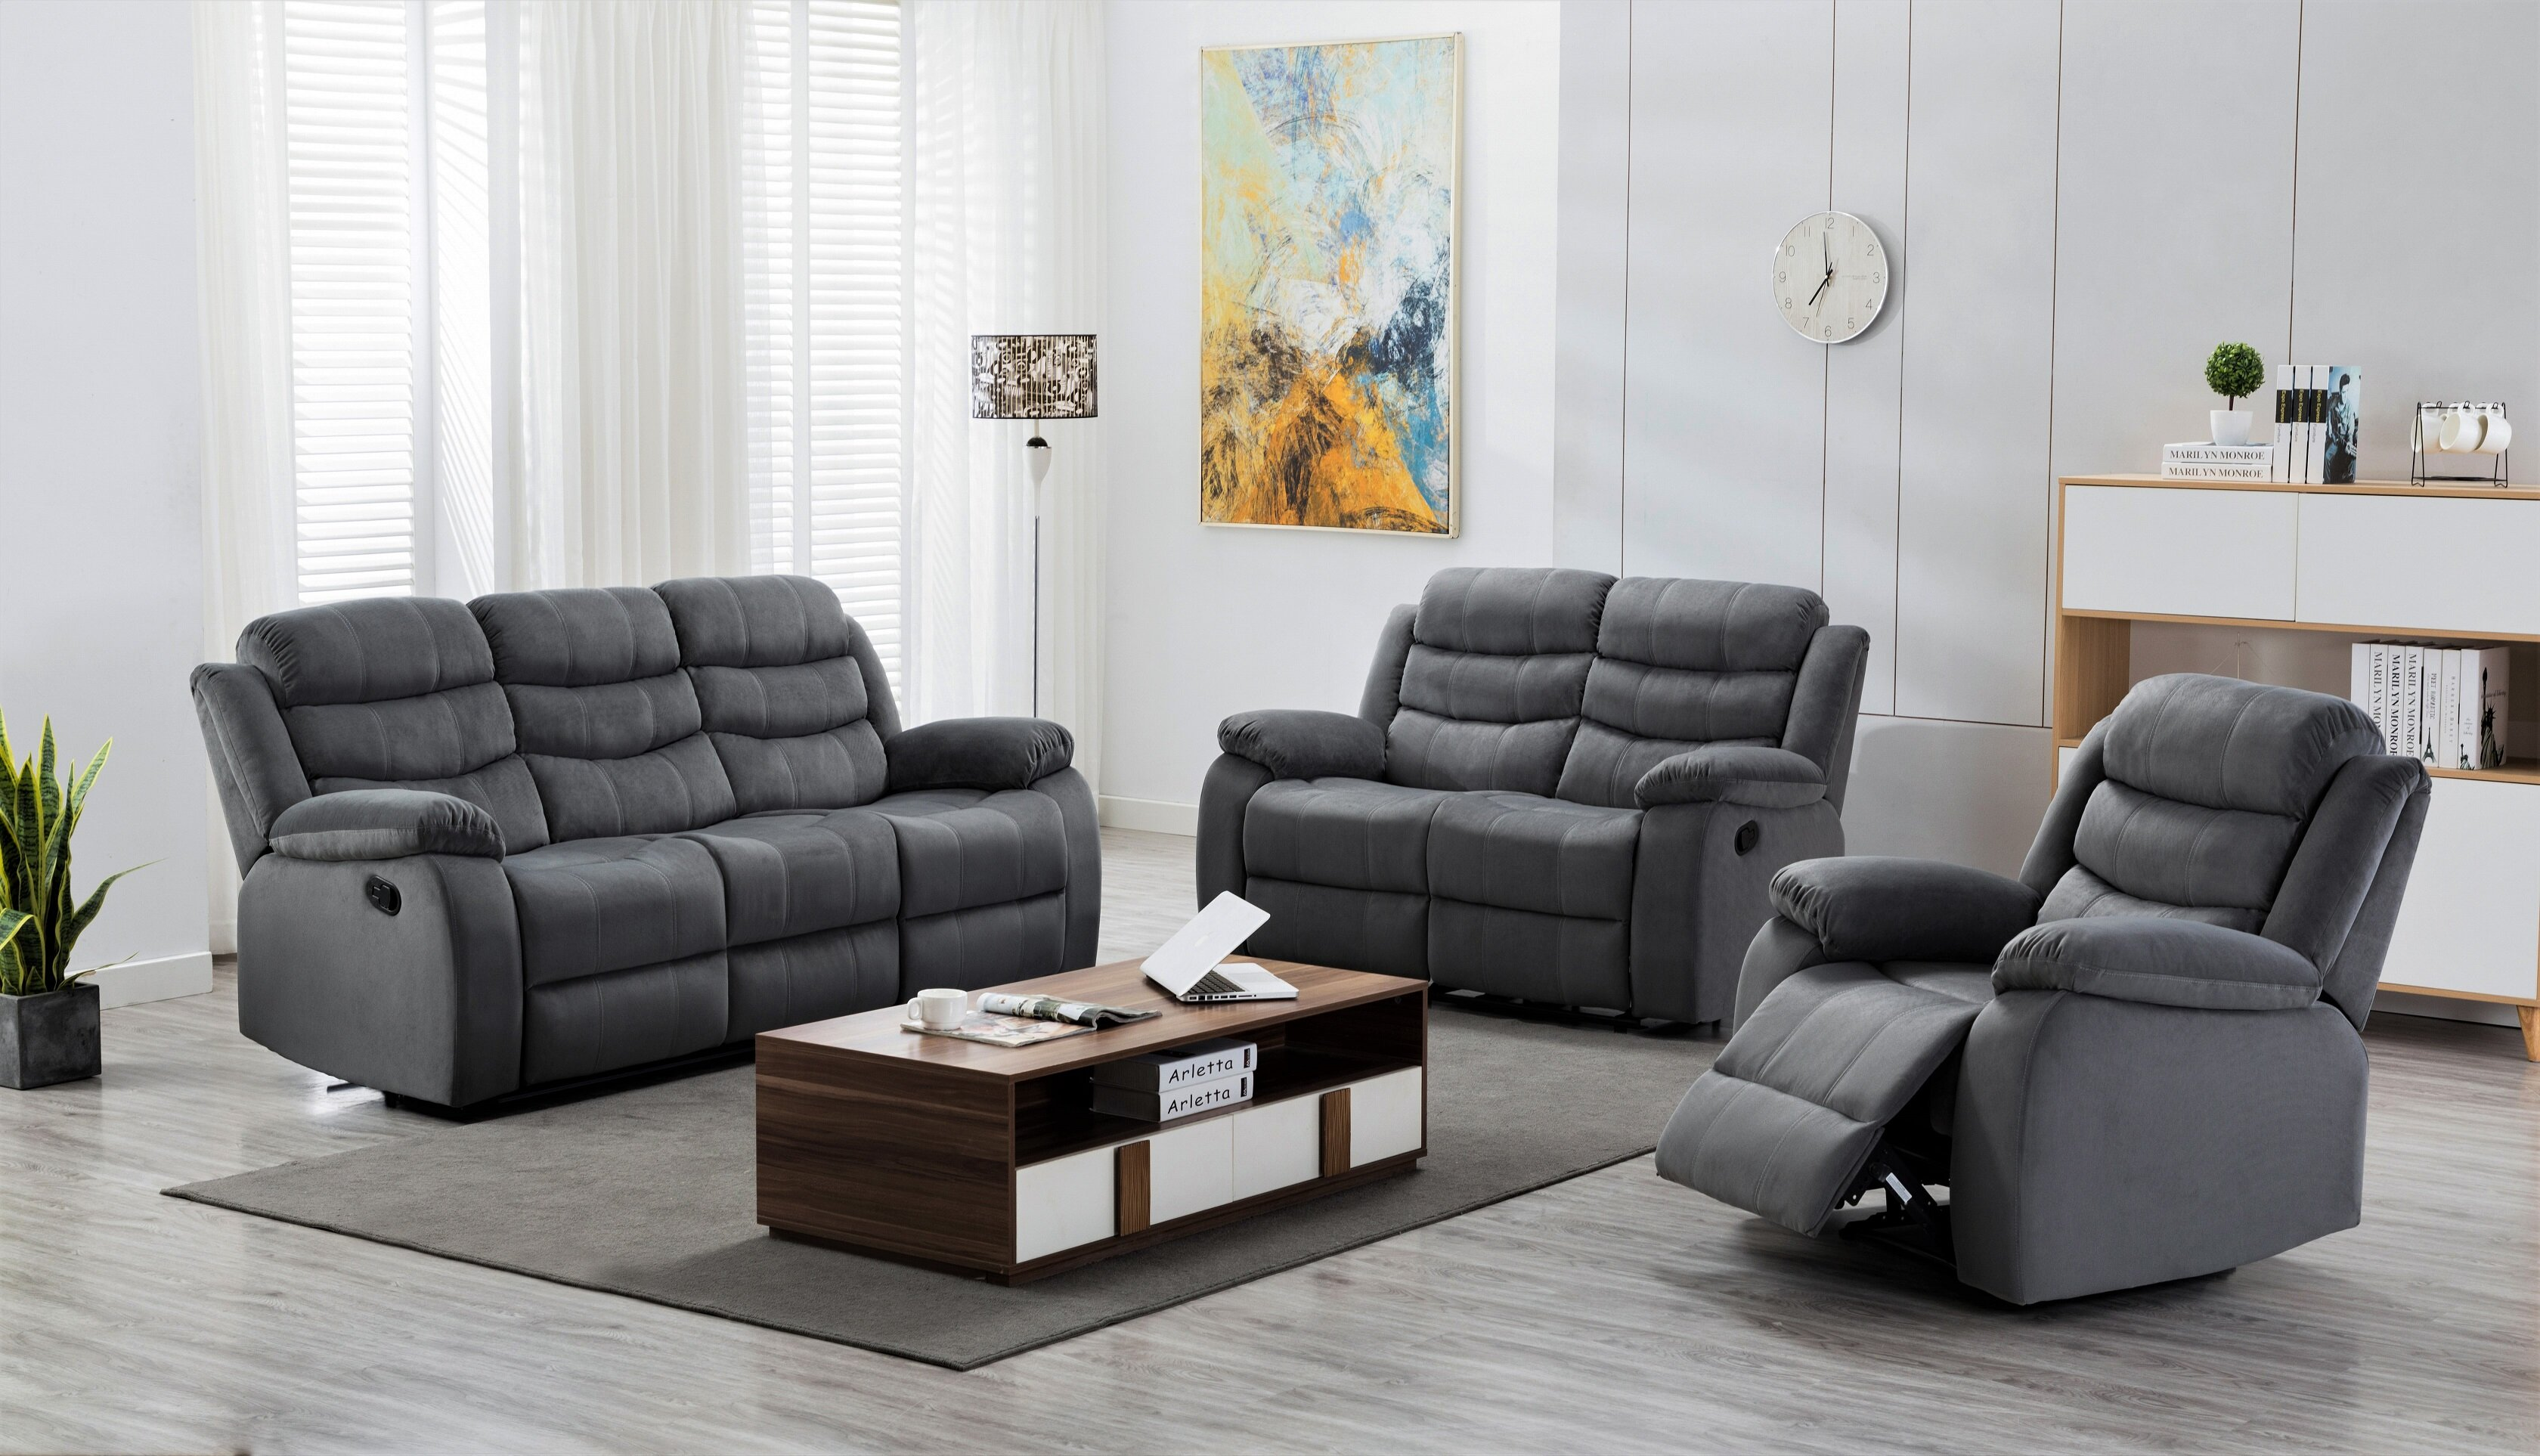 Mapes 3 Piece Reclining Living Room Set